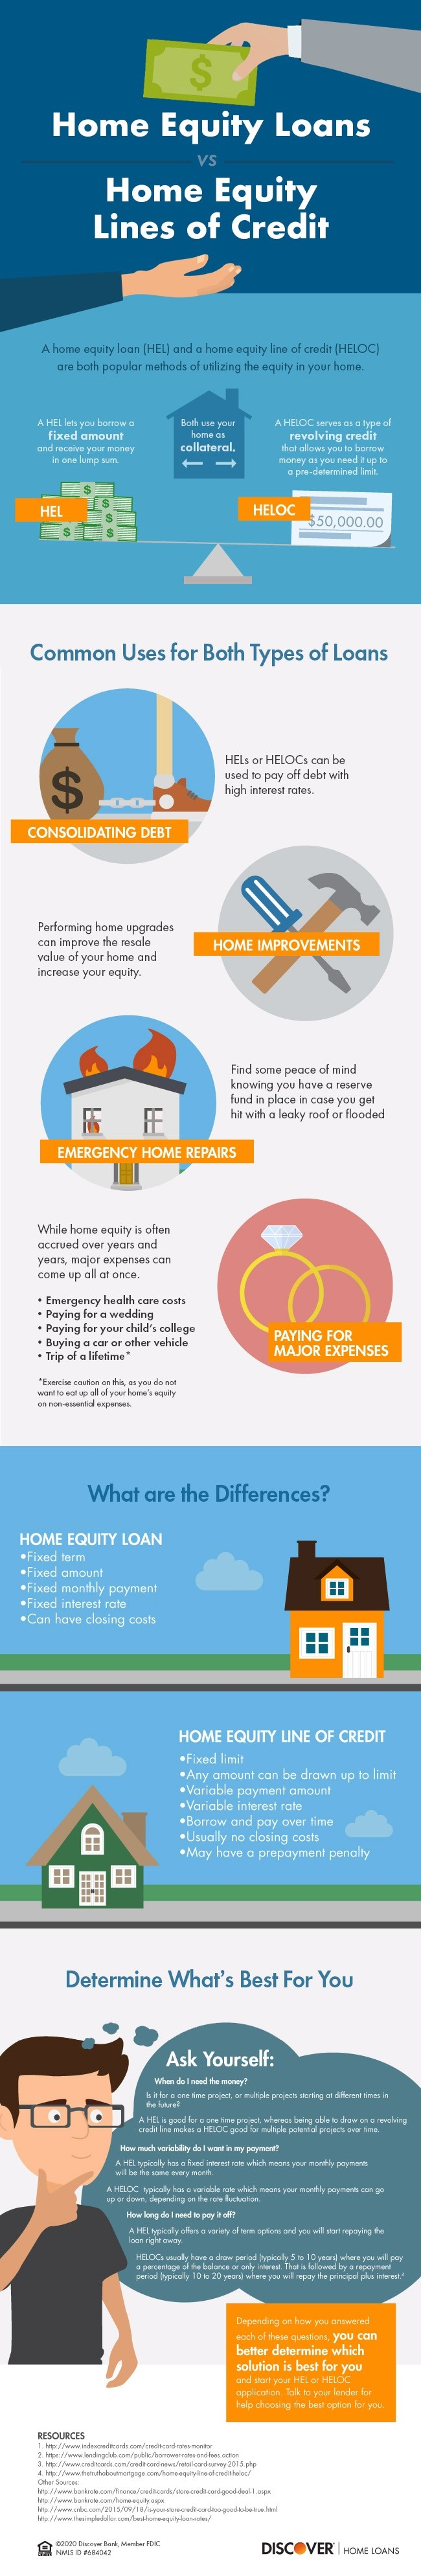 Infographic explaining the differences between a home equity loan and a home equity line of credit